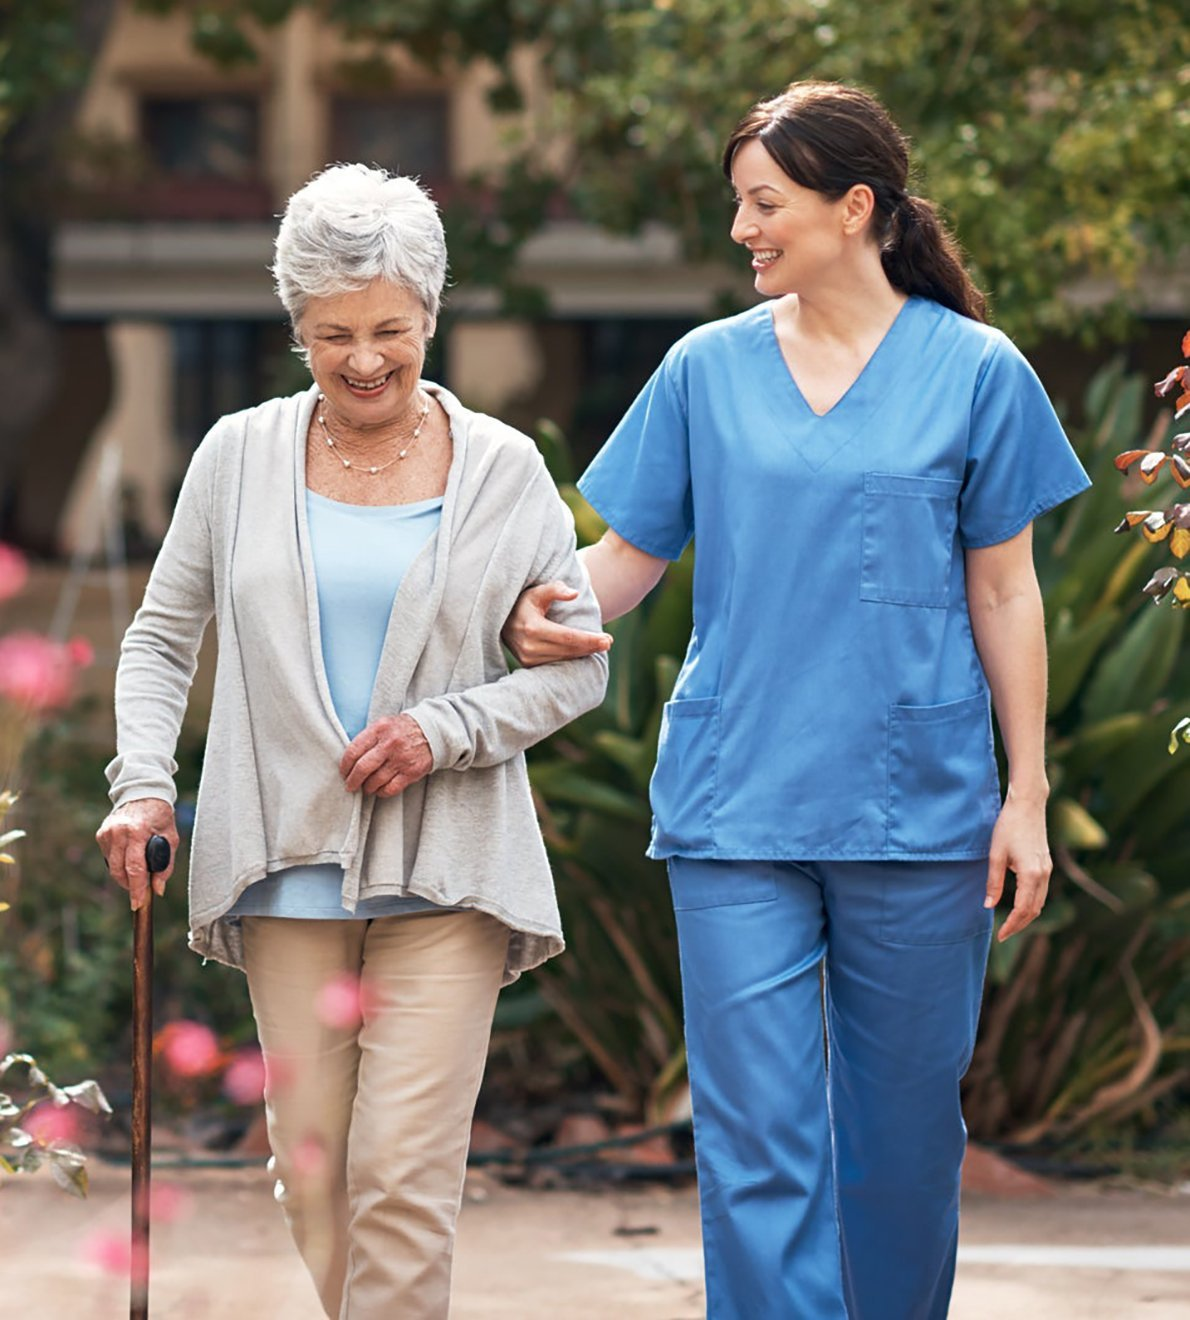 assisted living facility worker taking elder resident on a stroll